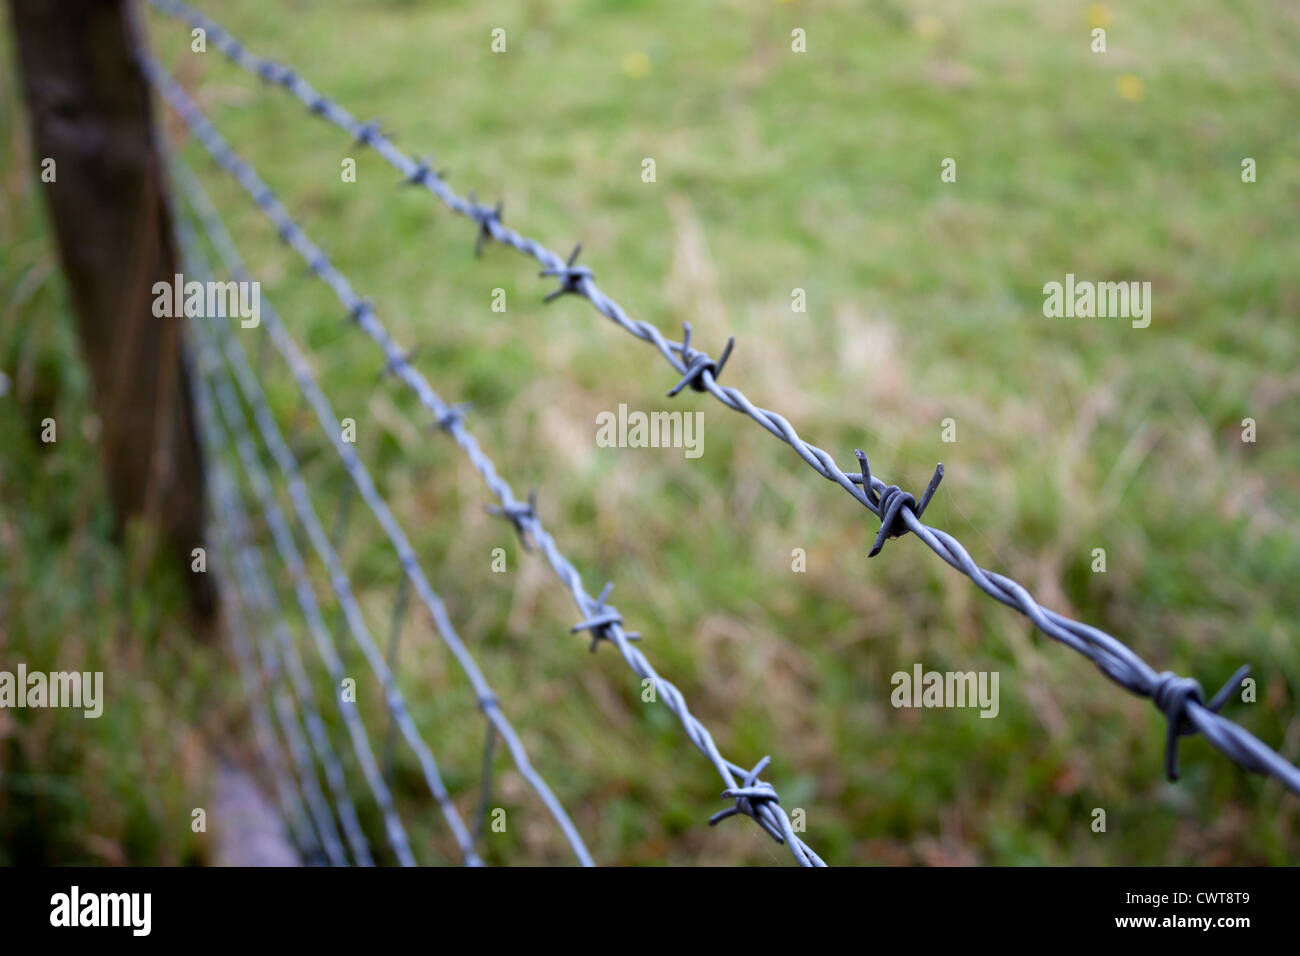 Detail of a barbed wire fence on rural land to contain animals in a field. The focal point is on one barb. - Stock Image